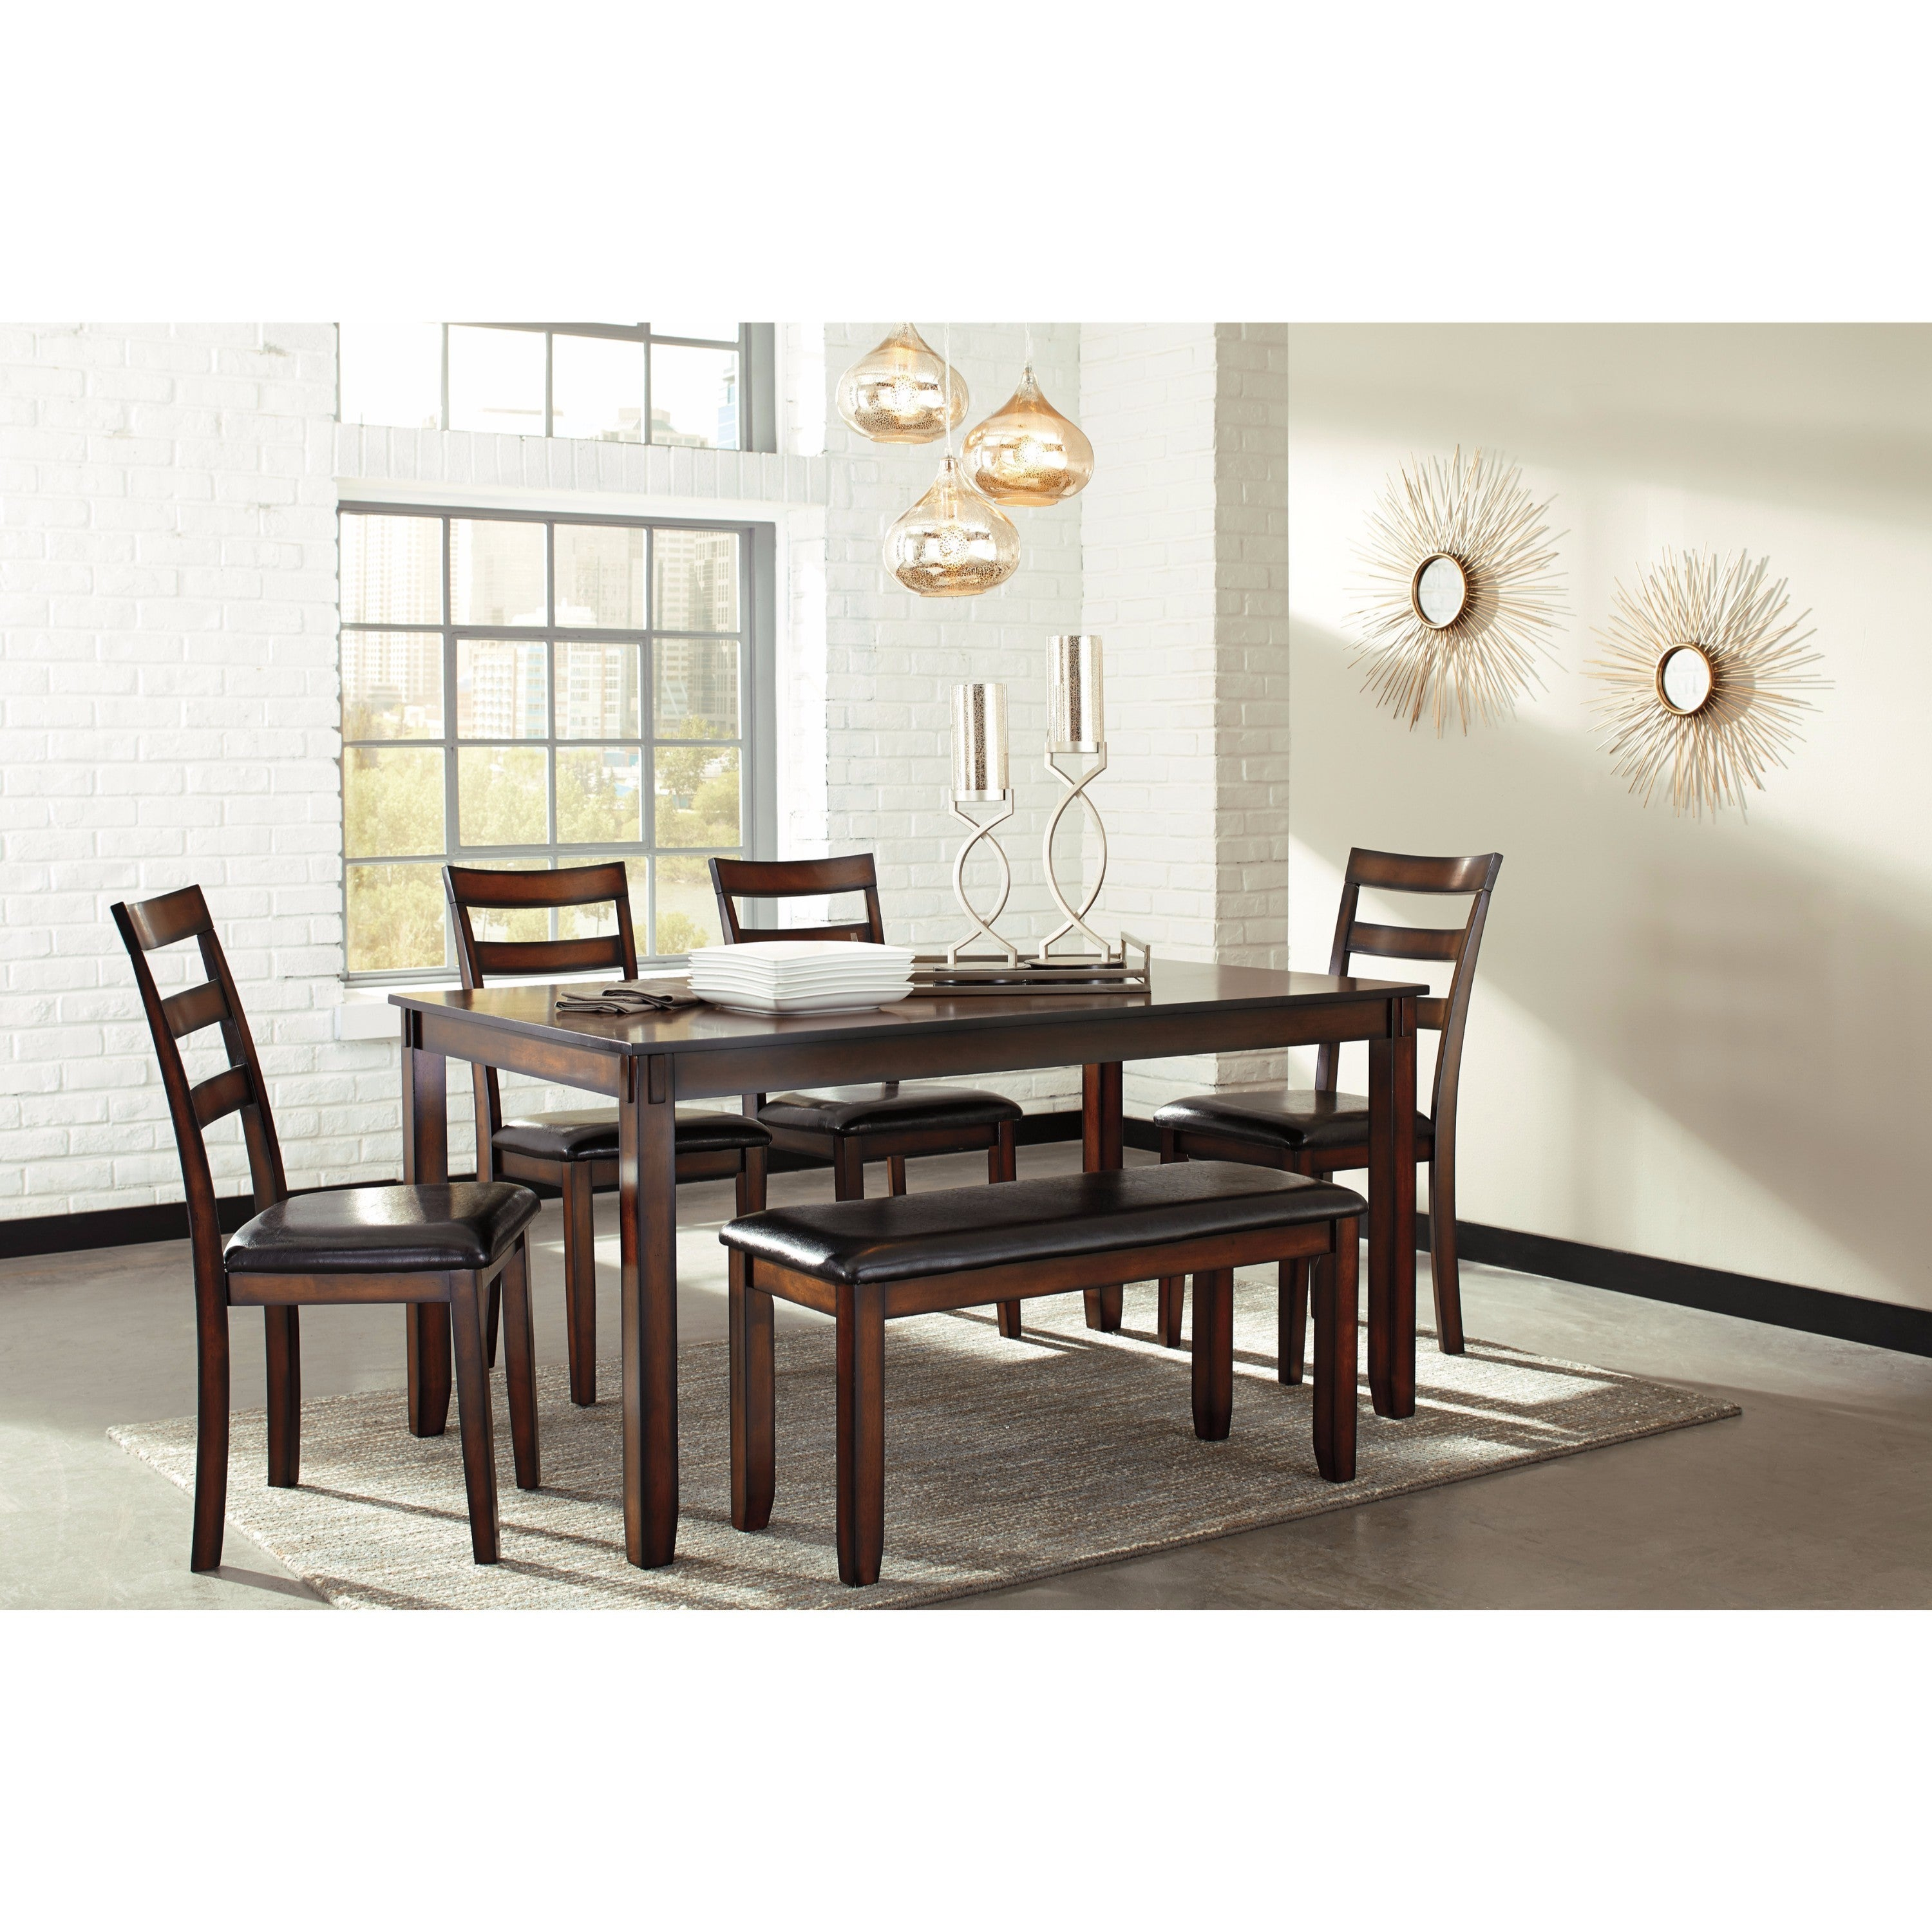 Buy 6 Piece Sets Kitchen & Dining Room Sets Online At Overstock In Current Osterman 6 Piece Extendable Dining Sets (Set Of 6) (View 5 of 20)